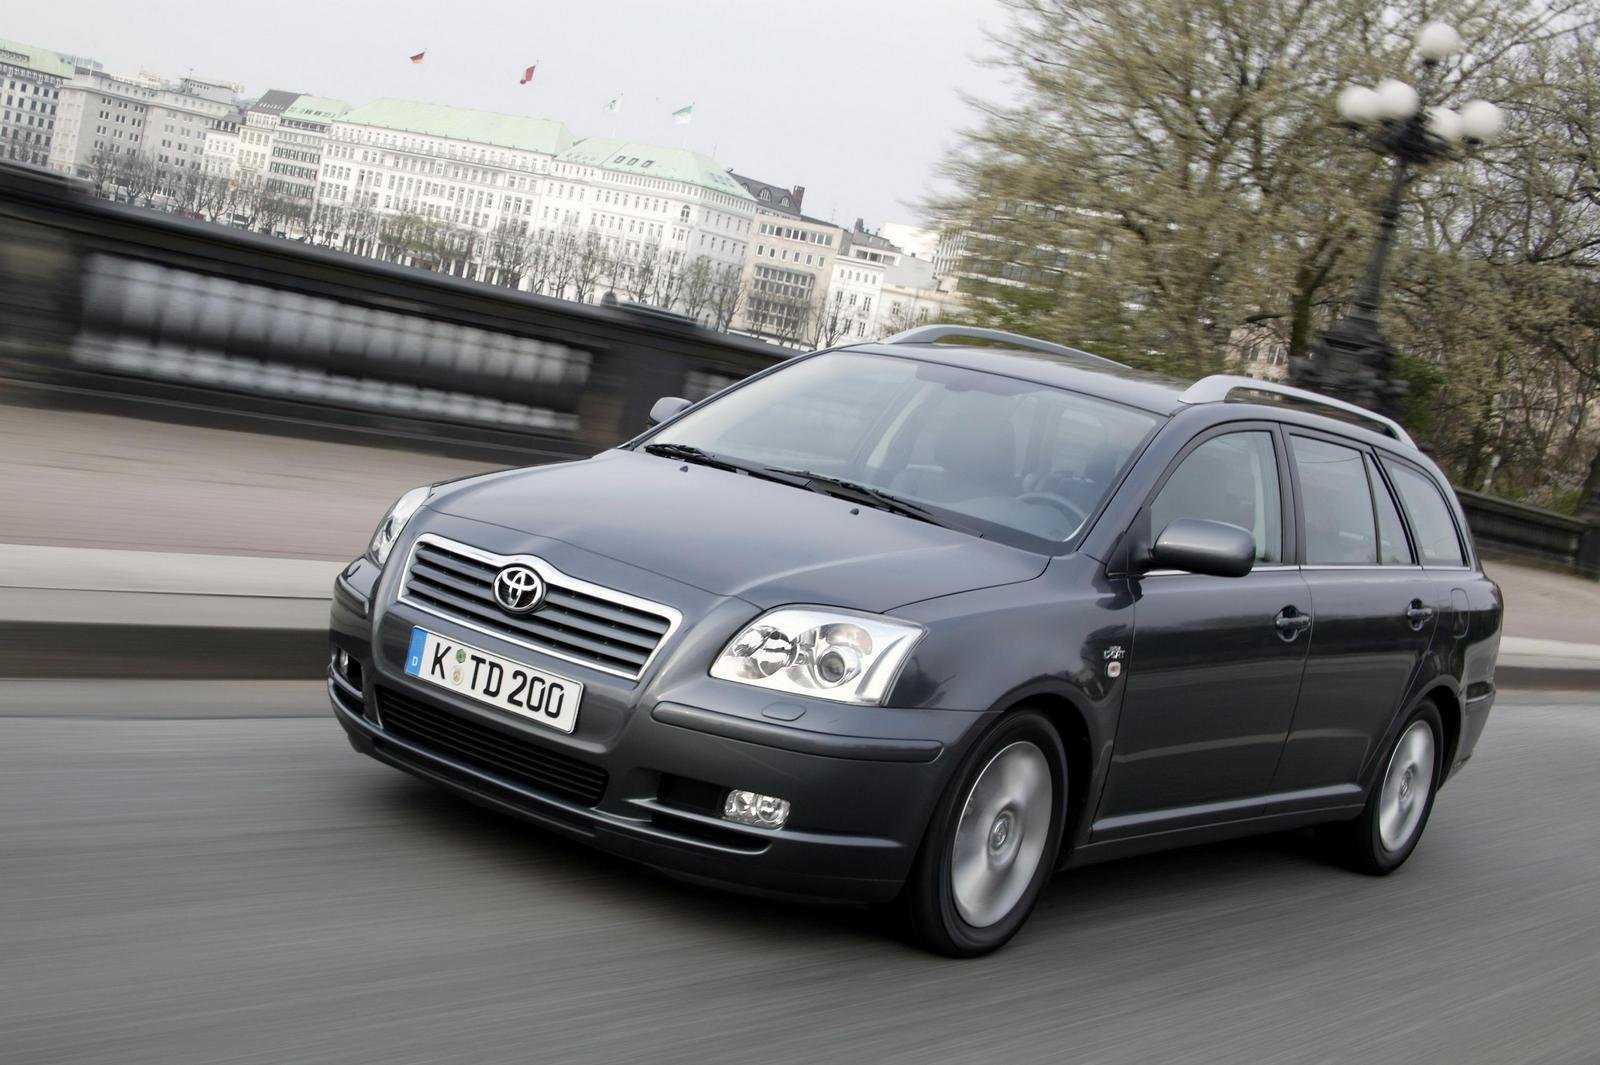 2010 toyota avensis picture 242976 car review top speed. Black Bedroom Furniture Sets. Home Design Ideas